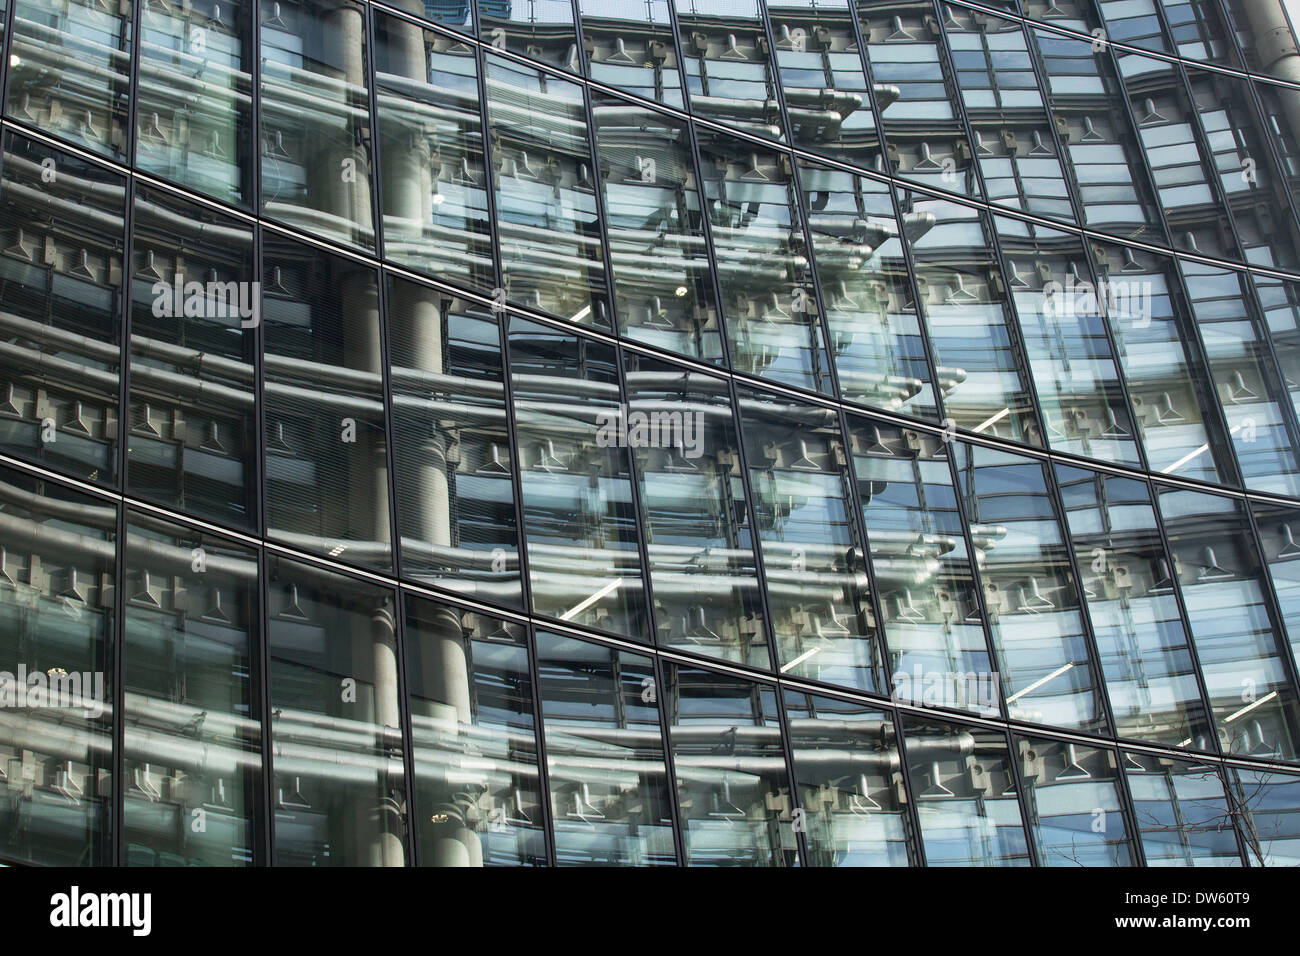 Architecture in the City of London, UK. Lloyds Building reflection as a wall of steel and glass modernism. - Stock Image